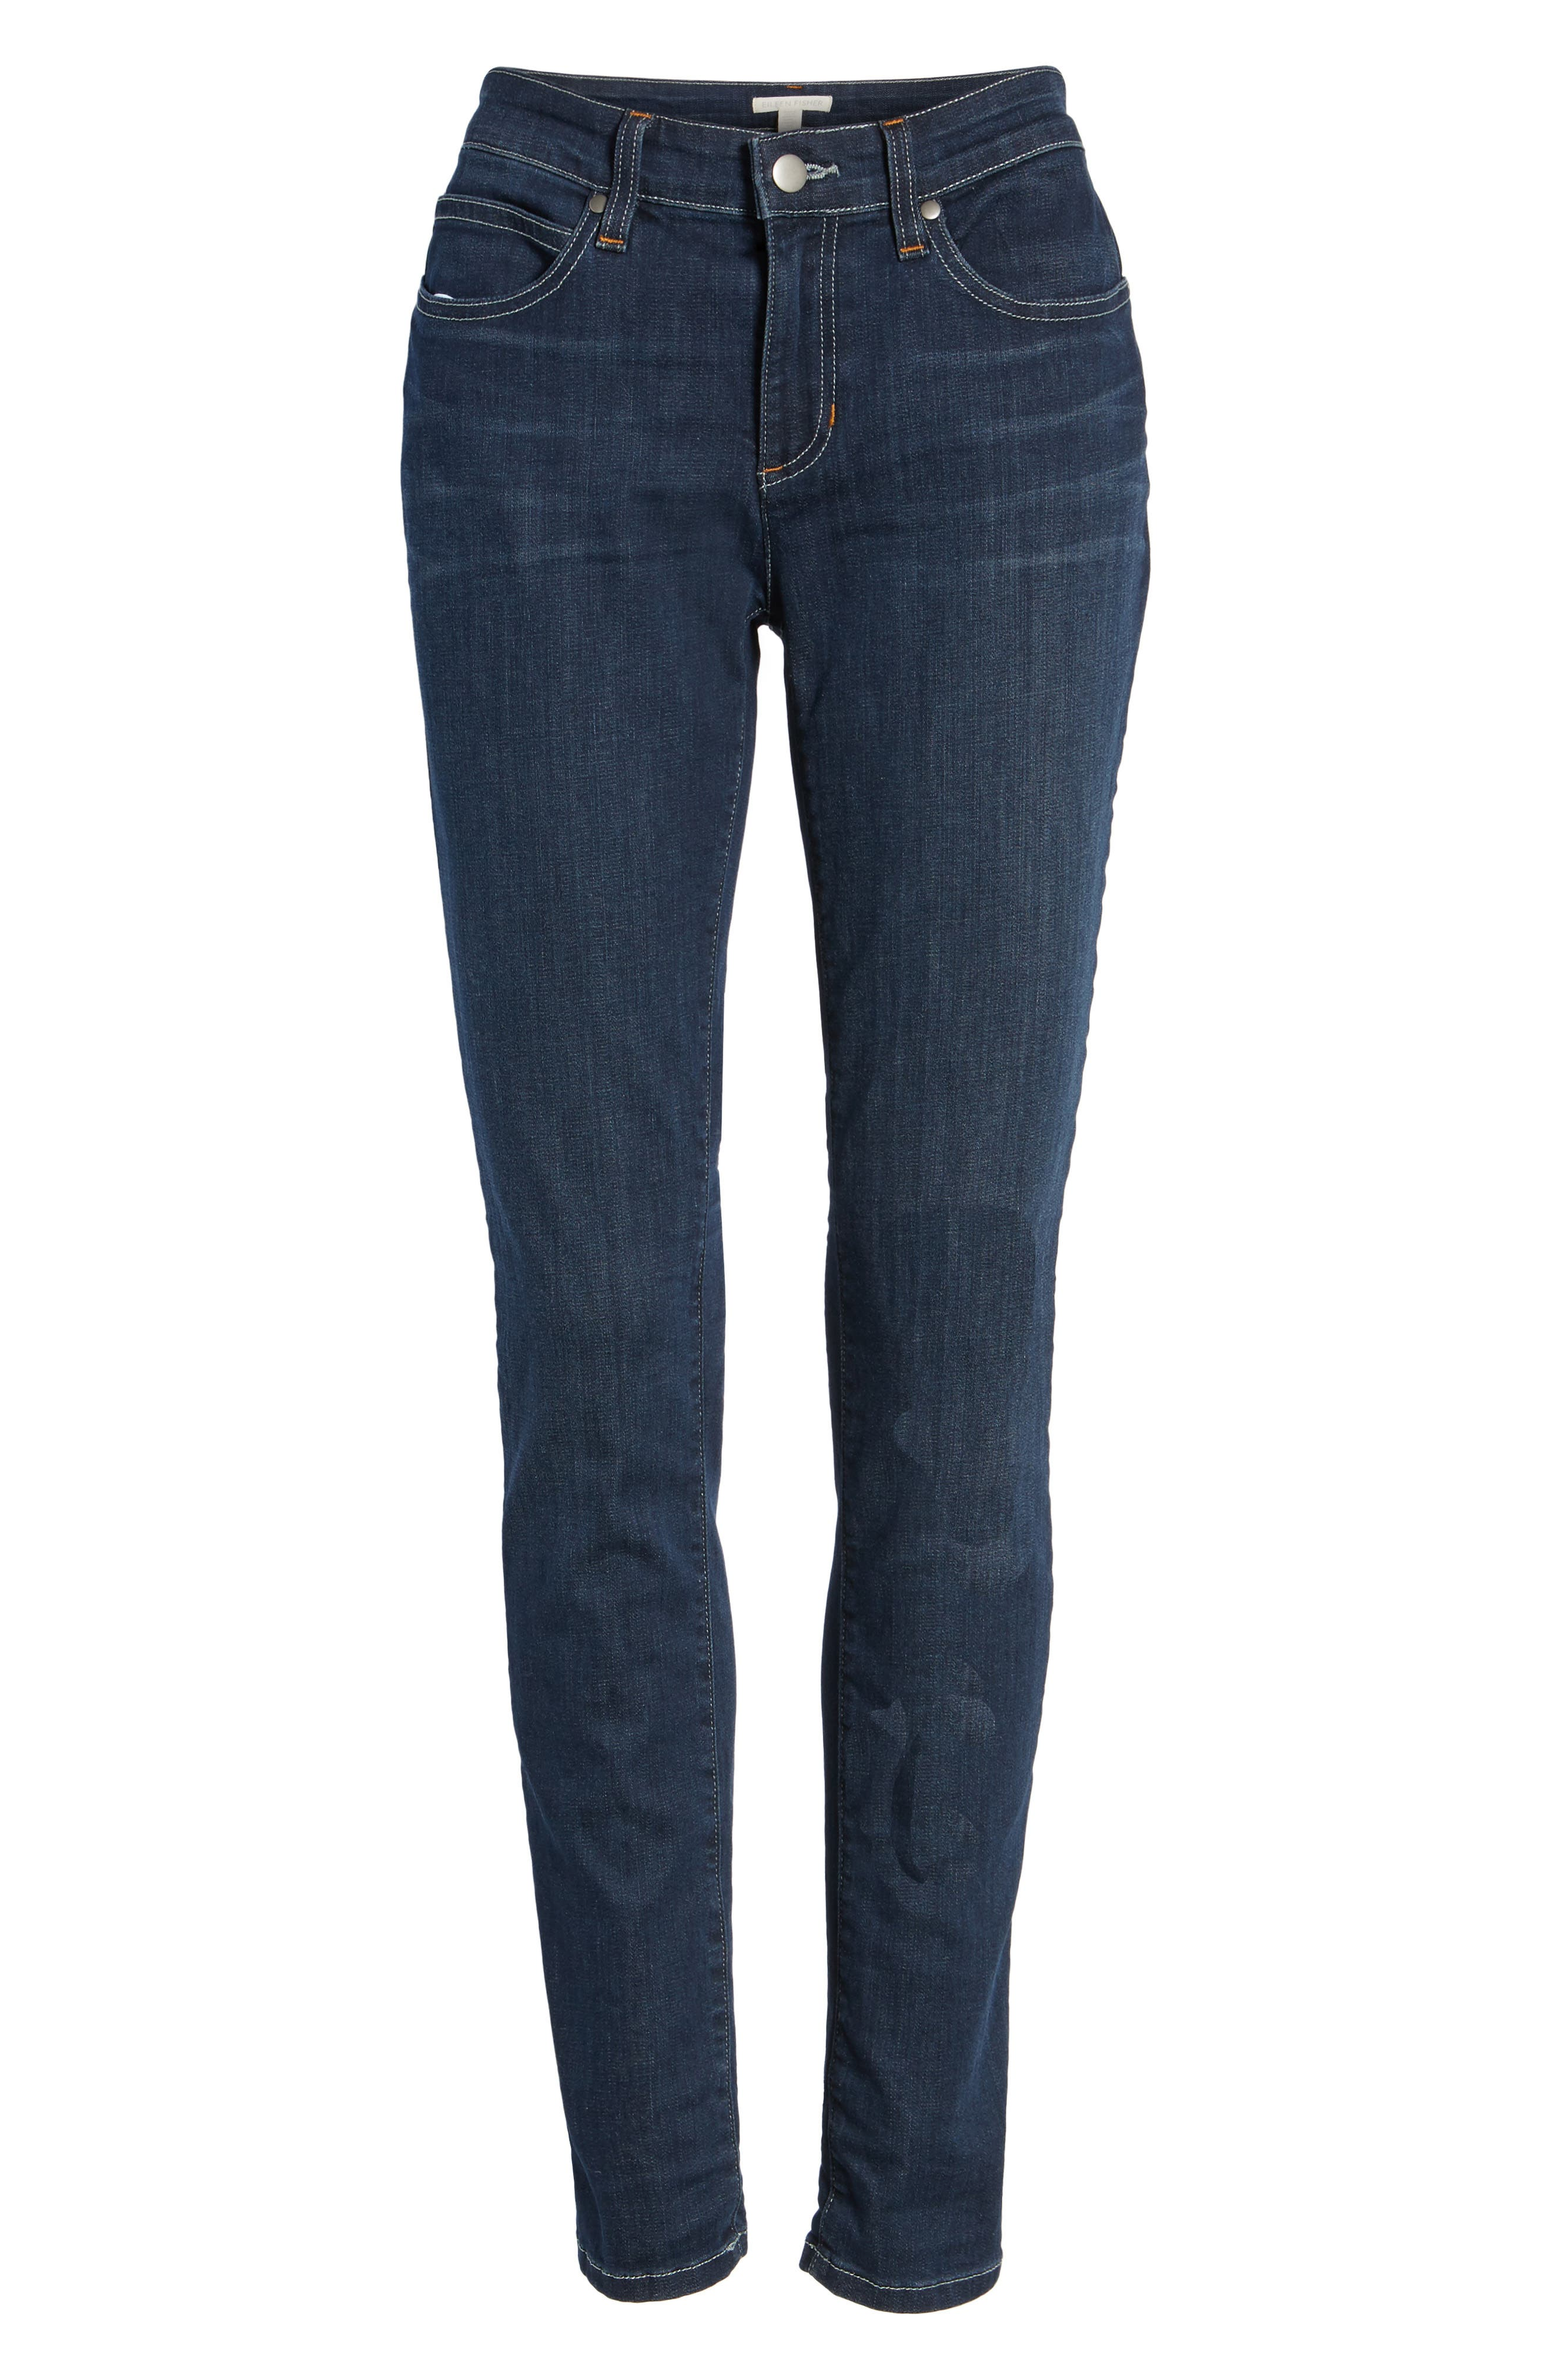 Eileen Fisher Stretch Skinny Jeans (Regular & Petite) (Online Only)